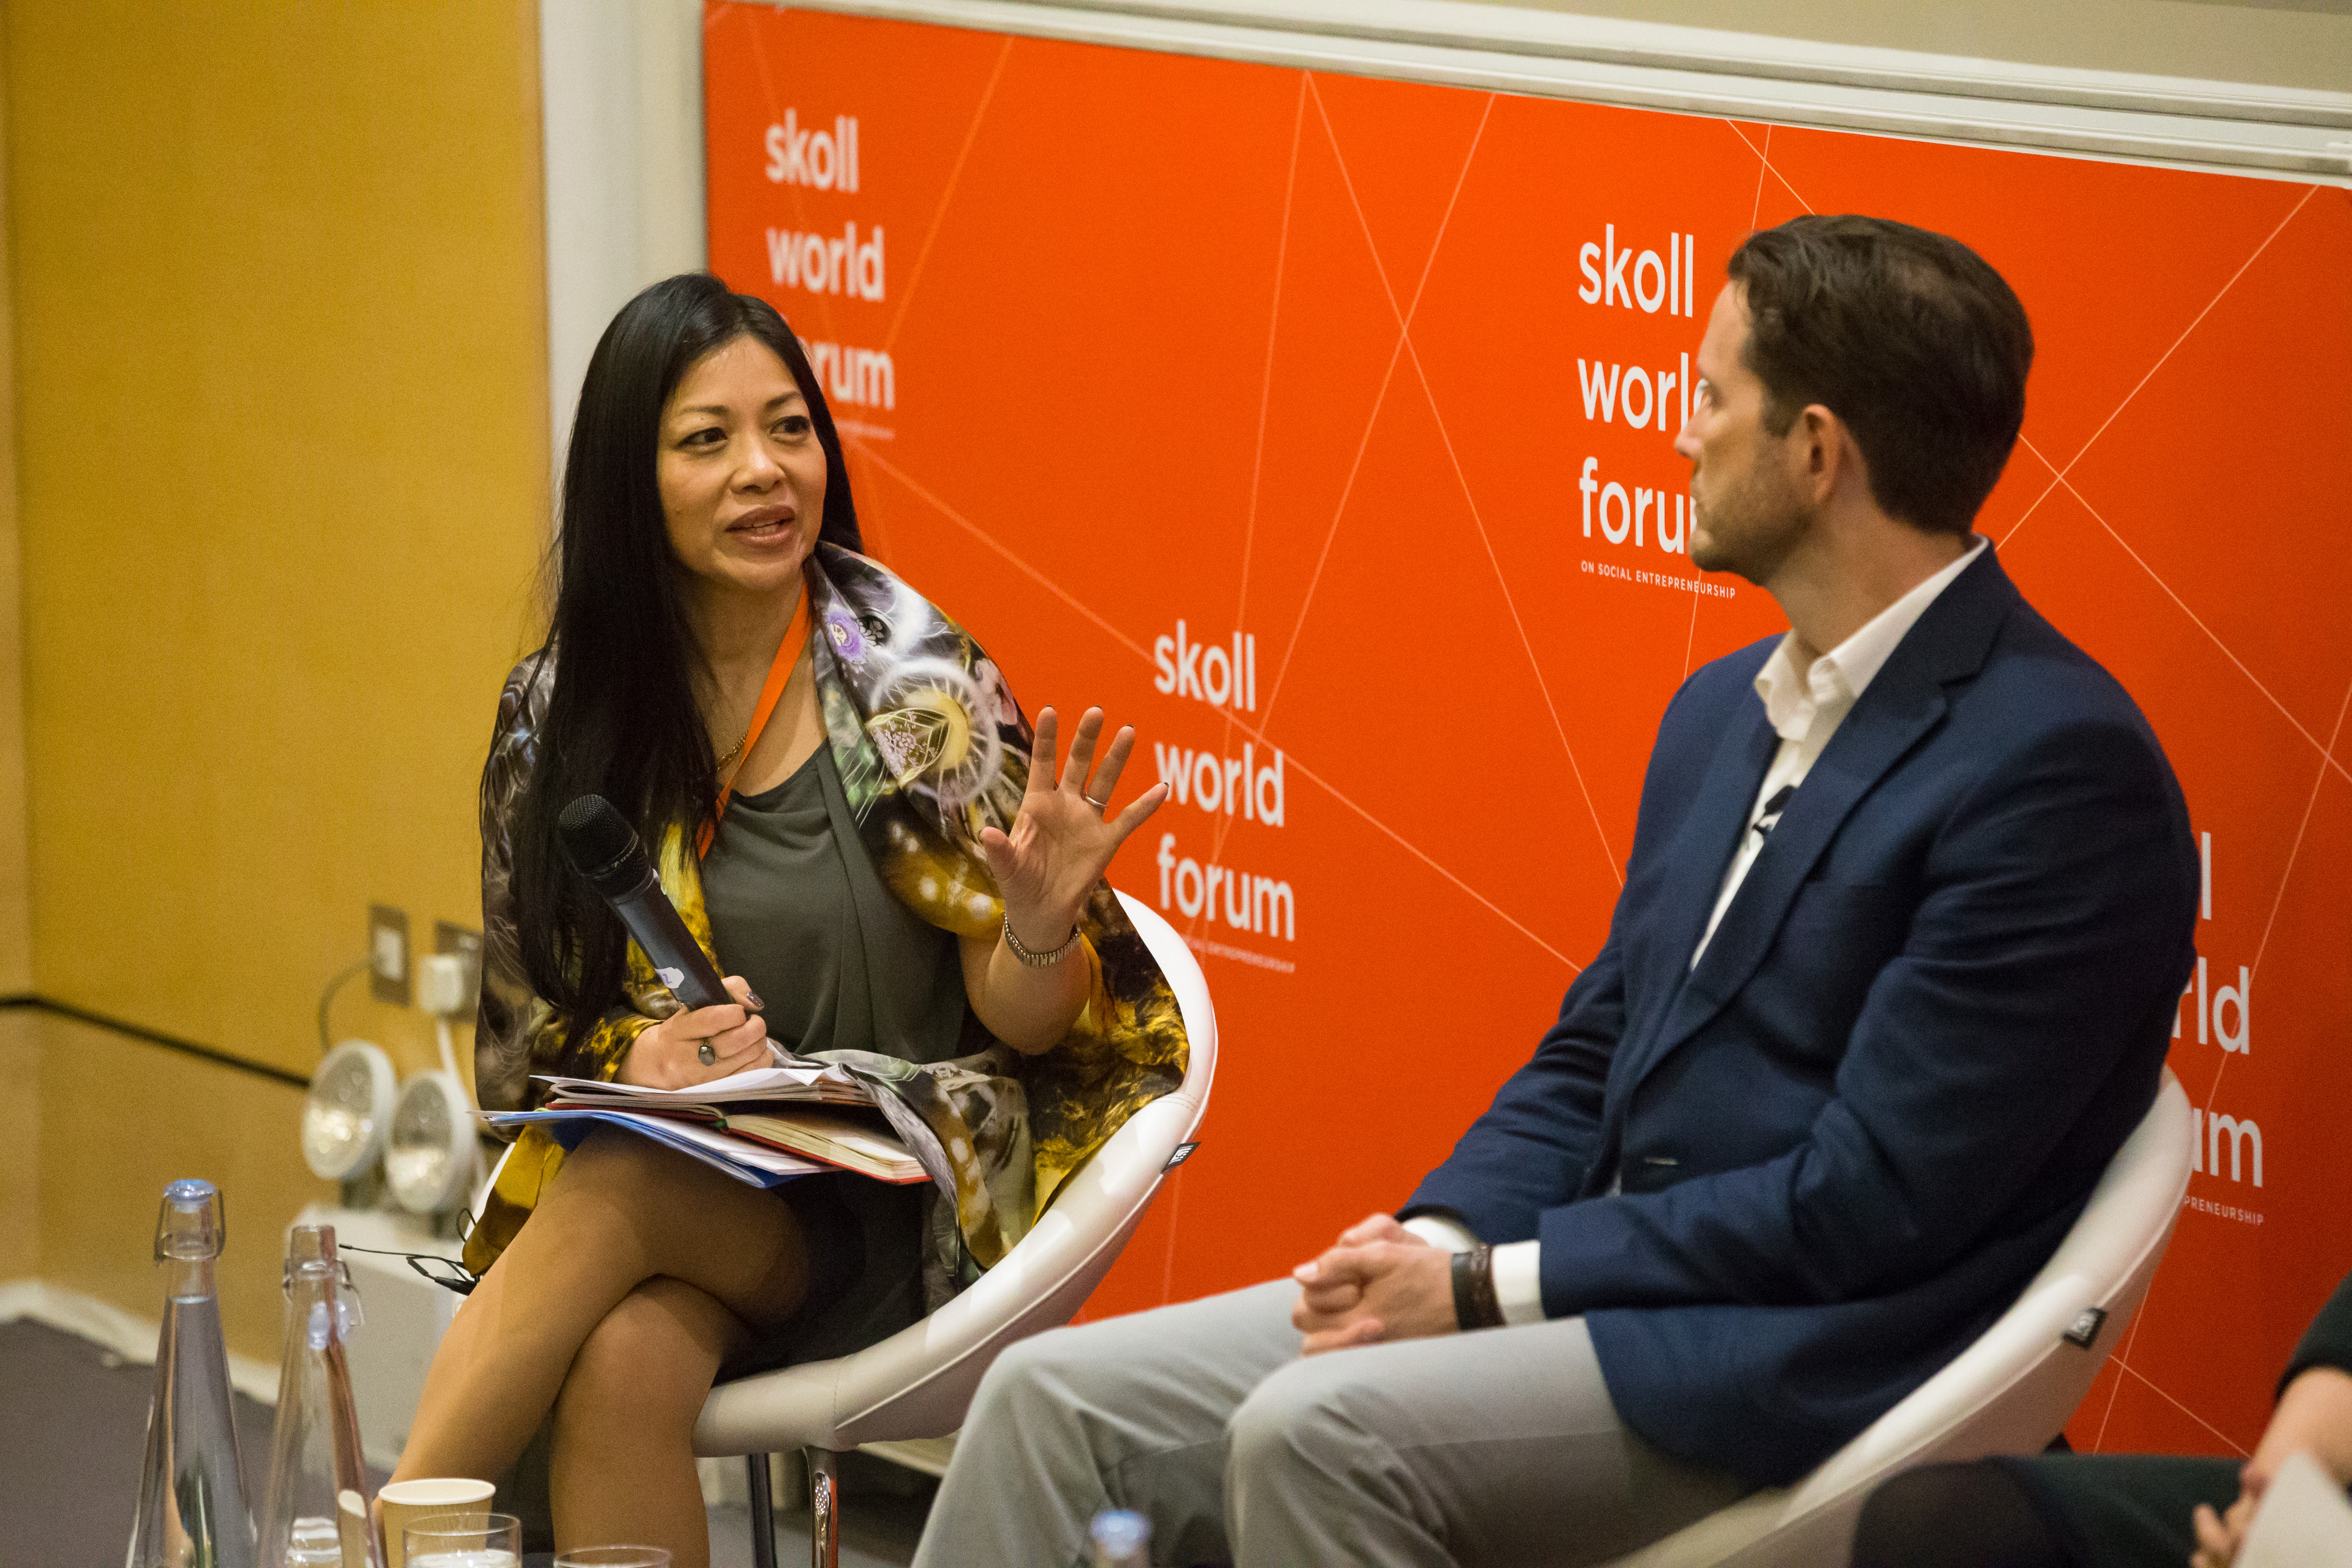 Skoll World Forum 2017 Reflection: Civil Society Under Fire